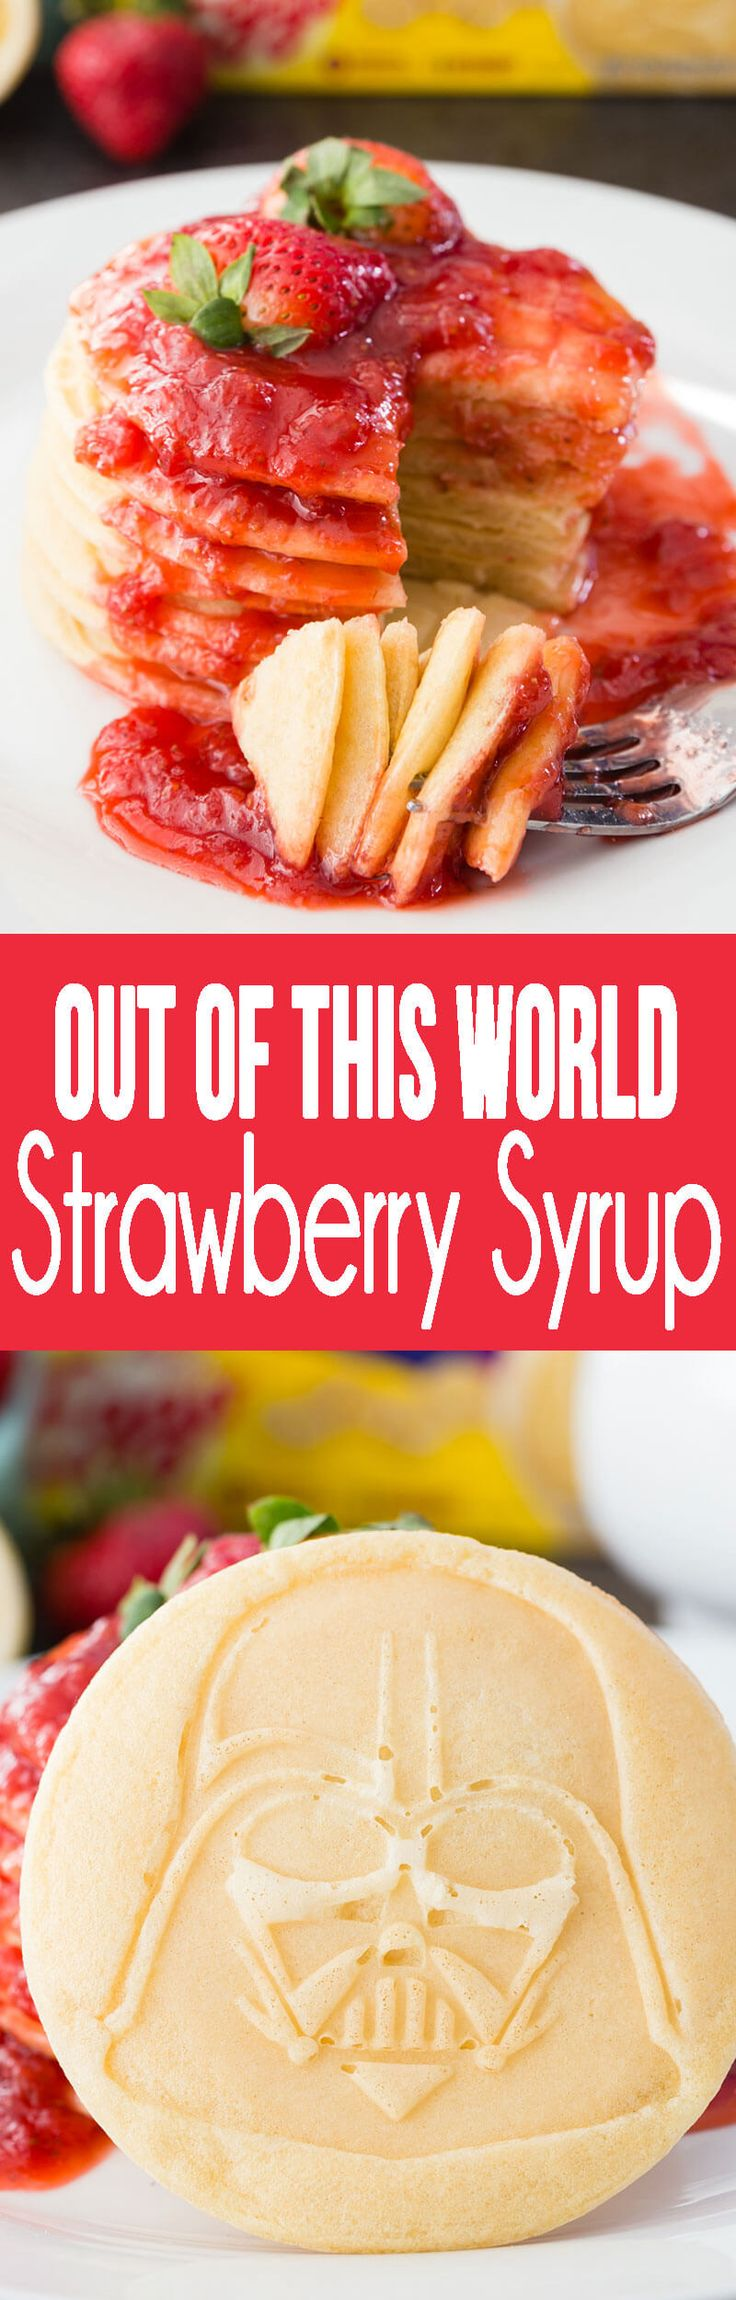 Strawberry Syrup is about to rock your breakfast world!#EggoStarWarsPancakes #ad